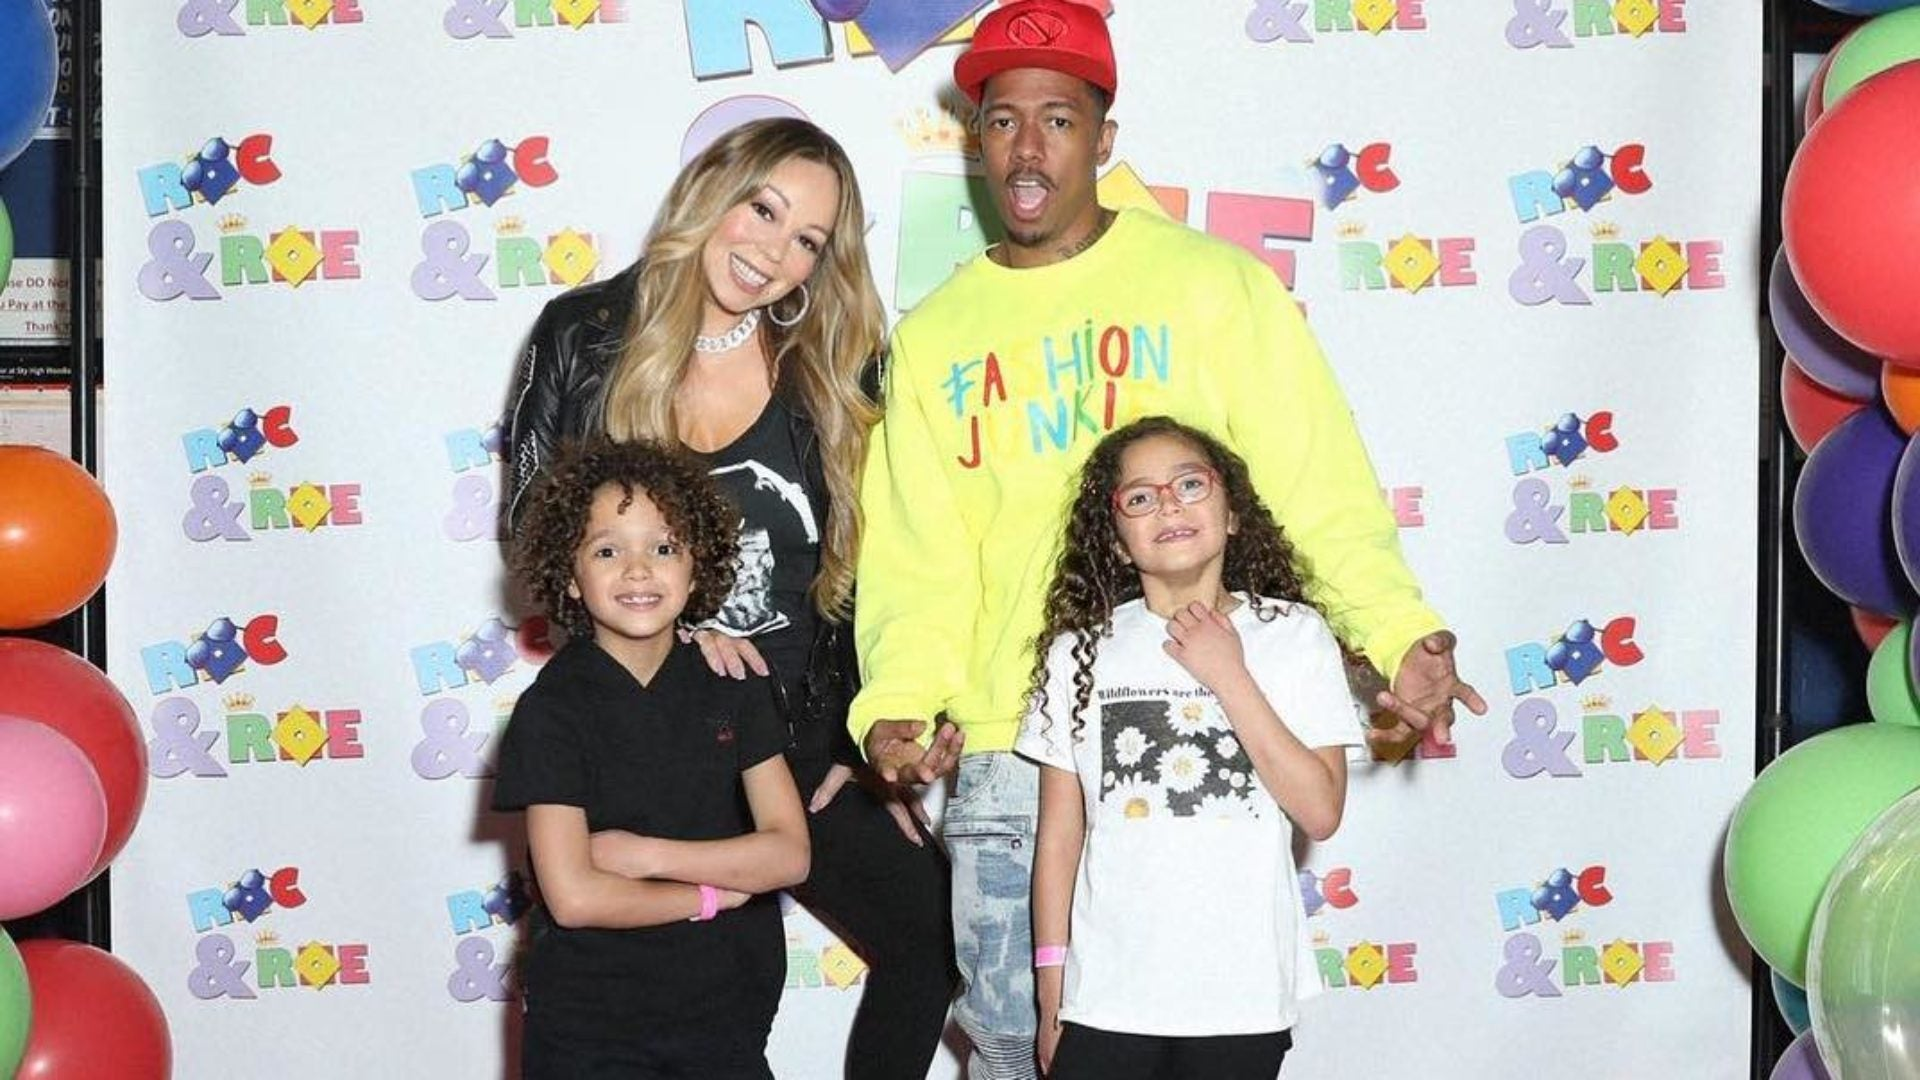 Mariah Carey and Nick Cannon Had A Blast At Their Twins' Laser Tag Birthday Party